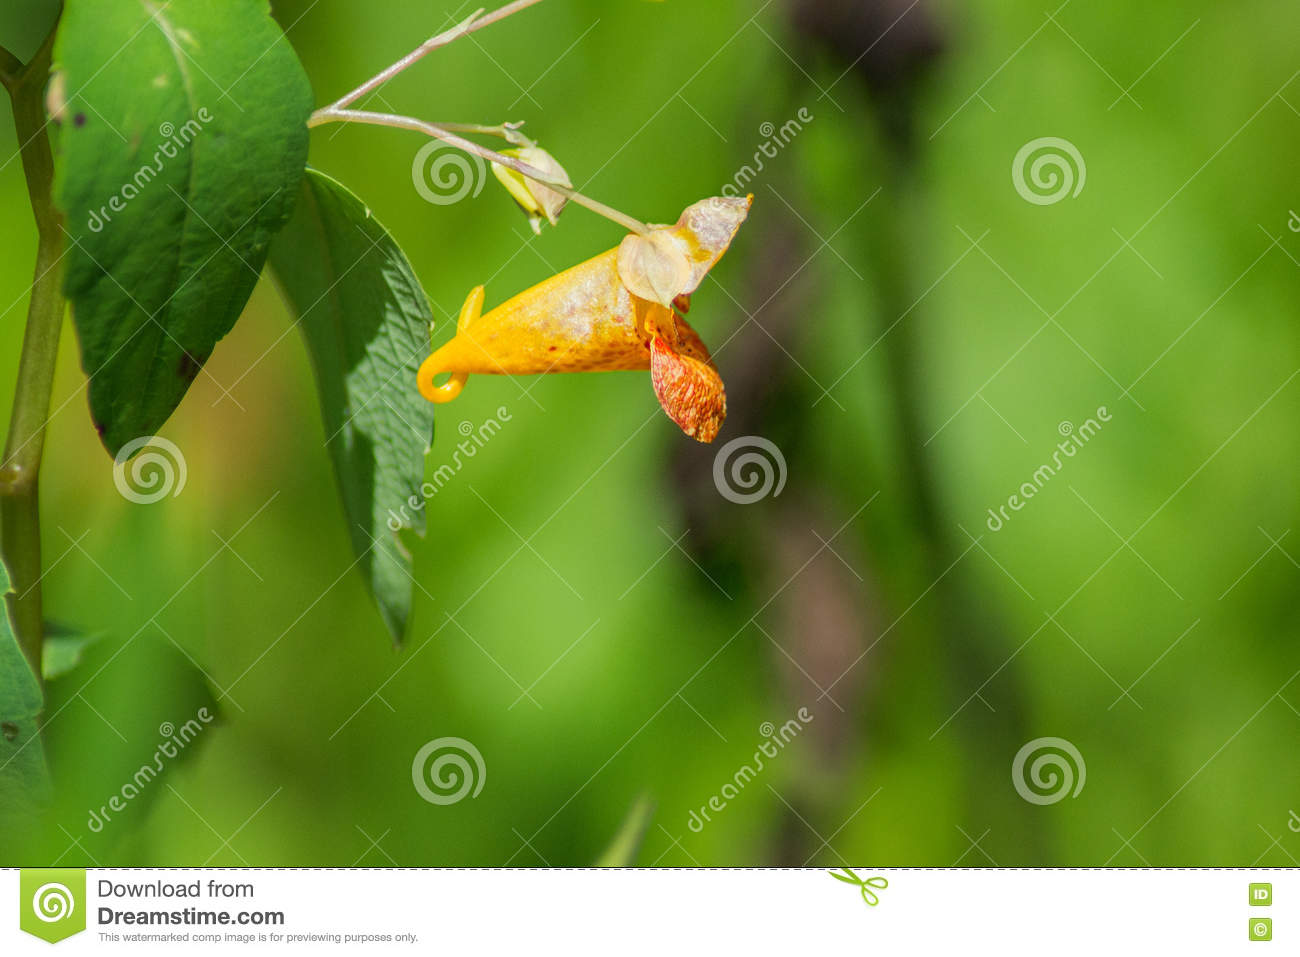 Capensis d Impatiens d †commun de Jewelweed «